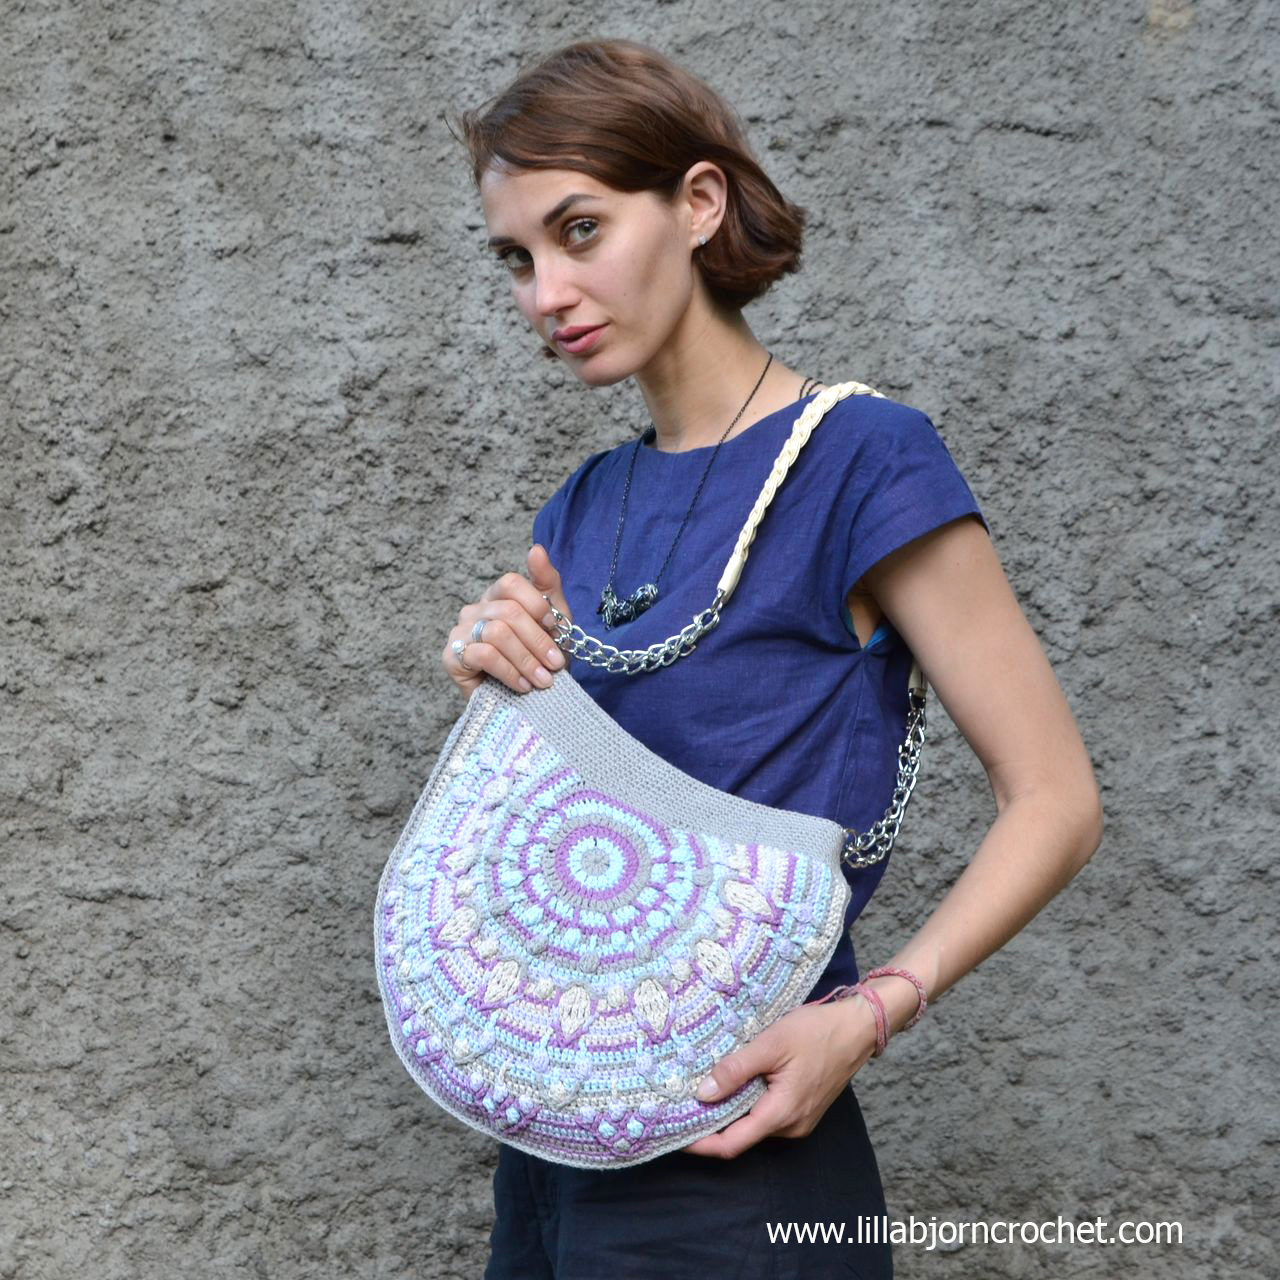 Peacock bag CAL http://www.lillabjorncrochet.com/2016/08/peacock-tail-bag-cal-general-information.html